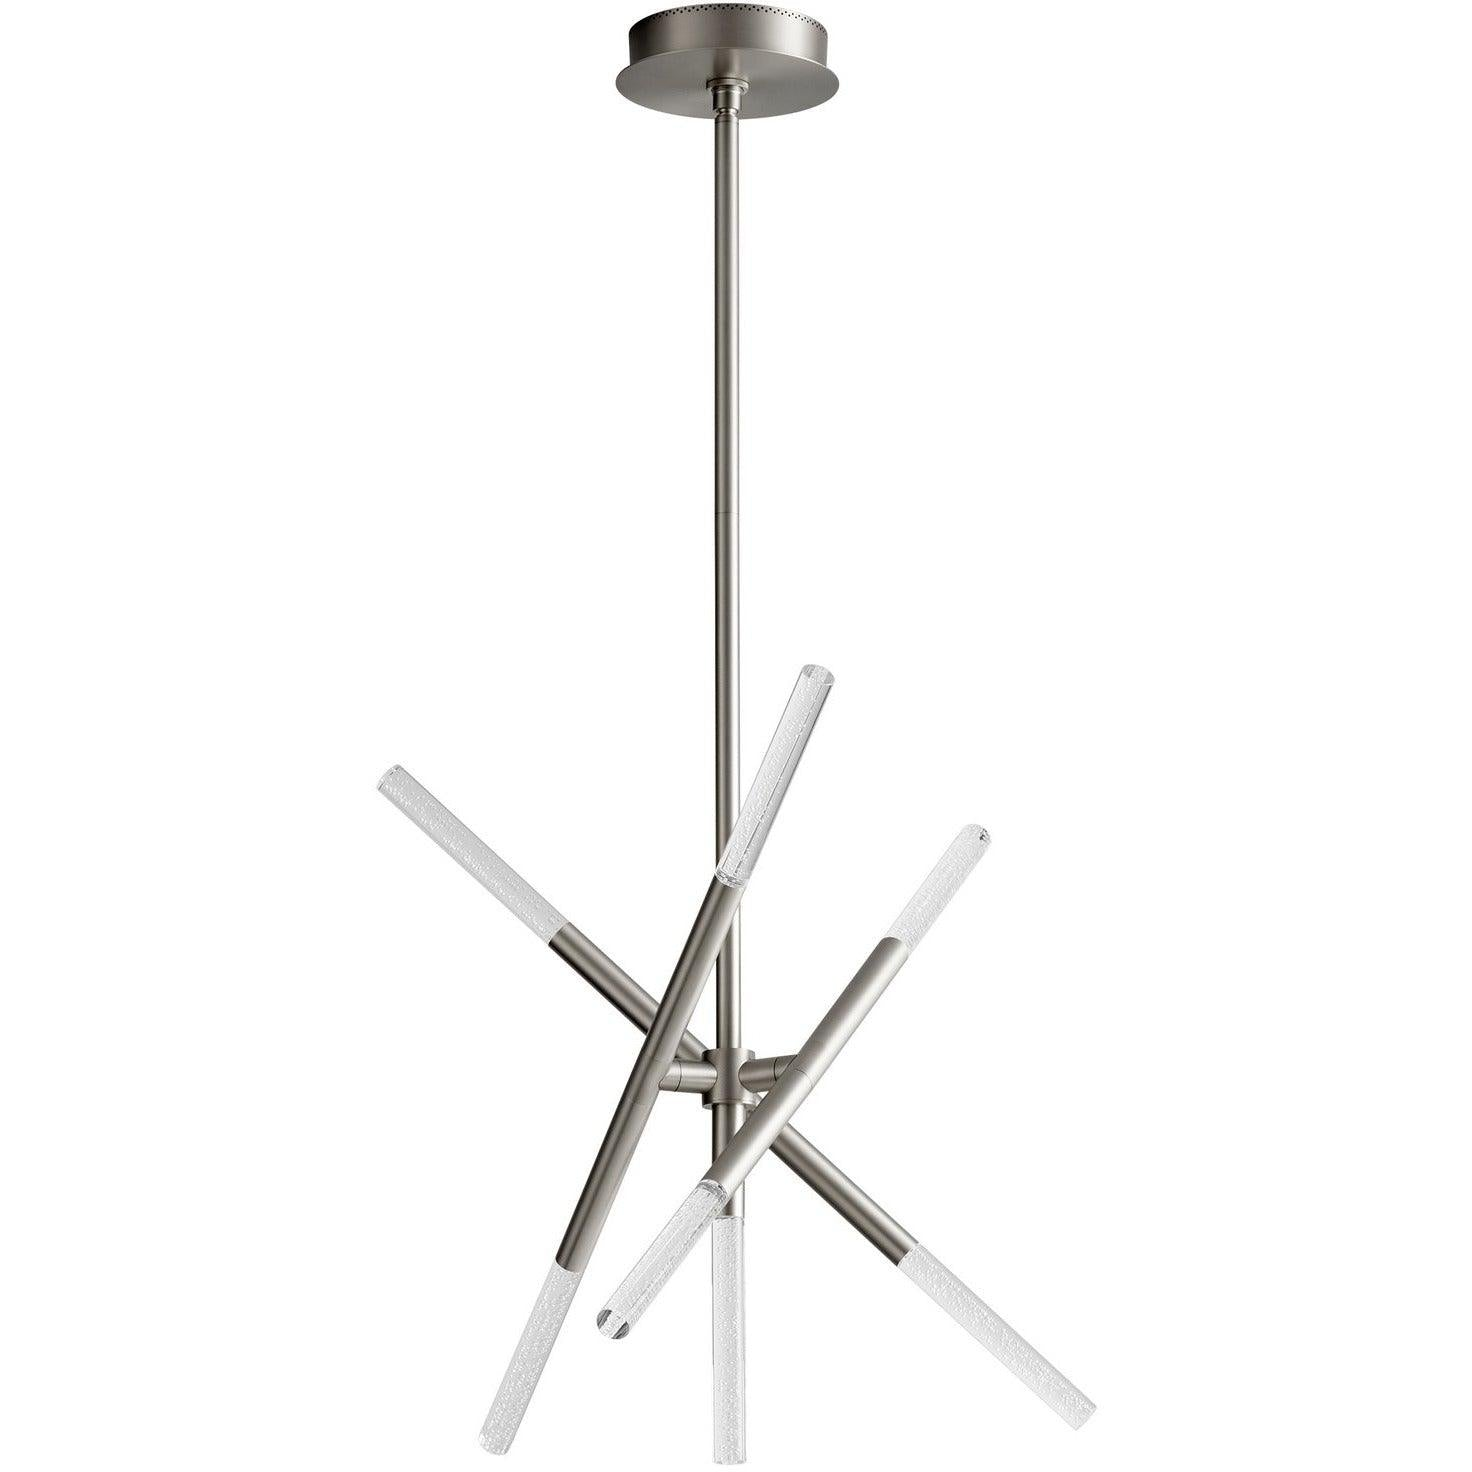 Oxygen - 3-696-24 - LED Ceiling Mount - Moxy - Satin Nickel